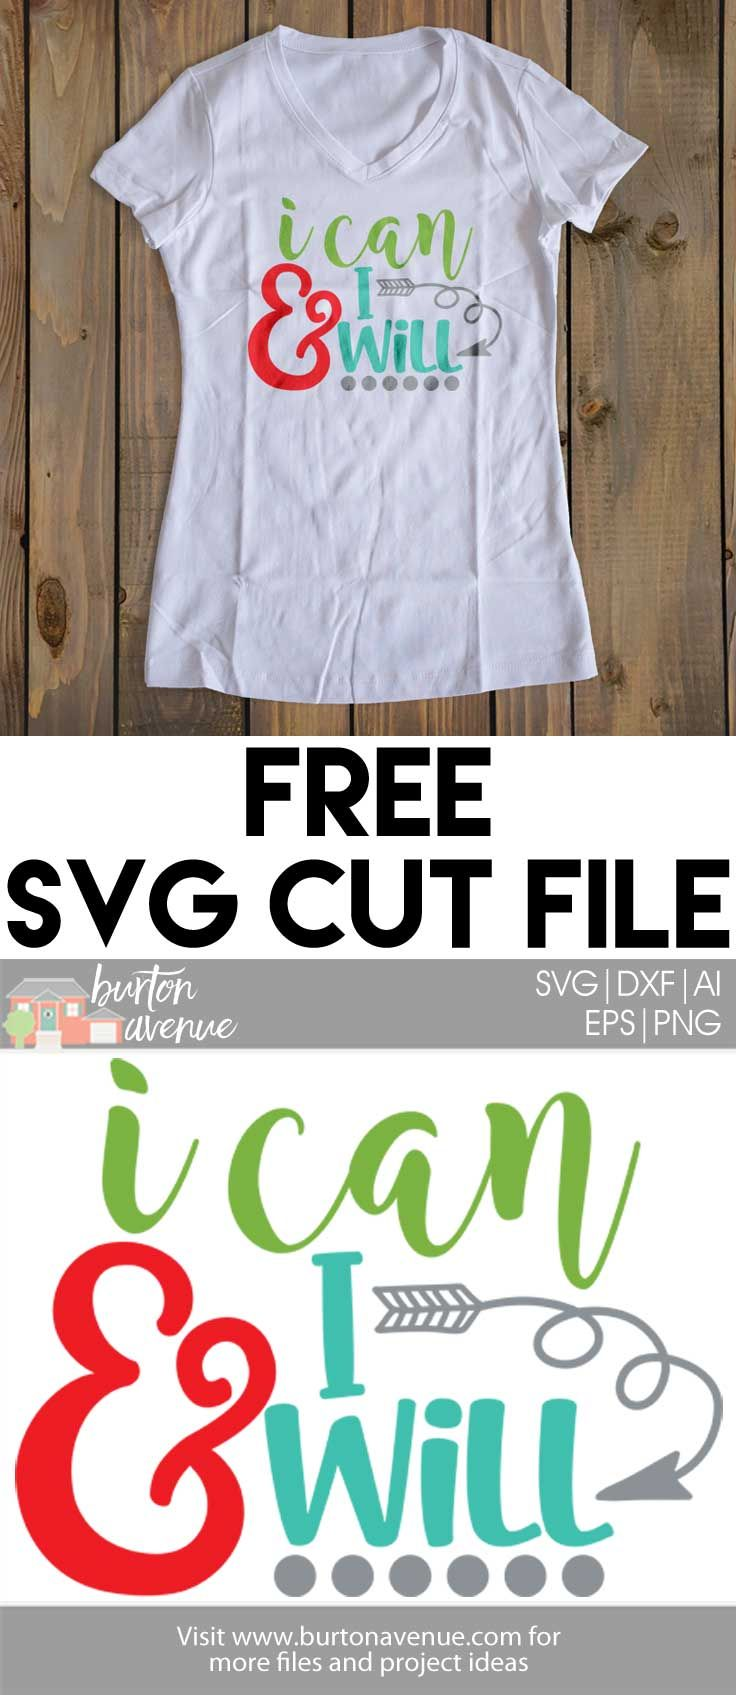 Free SVG File for Silhouette and Cricut